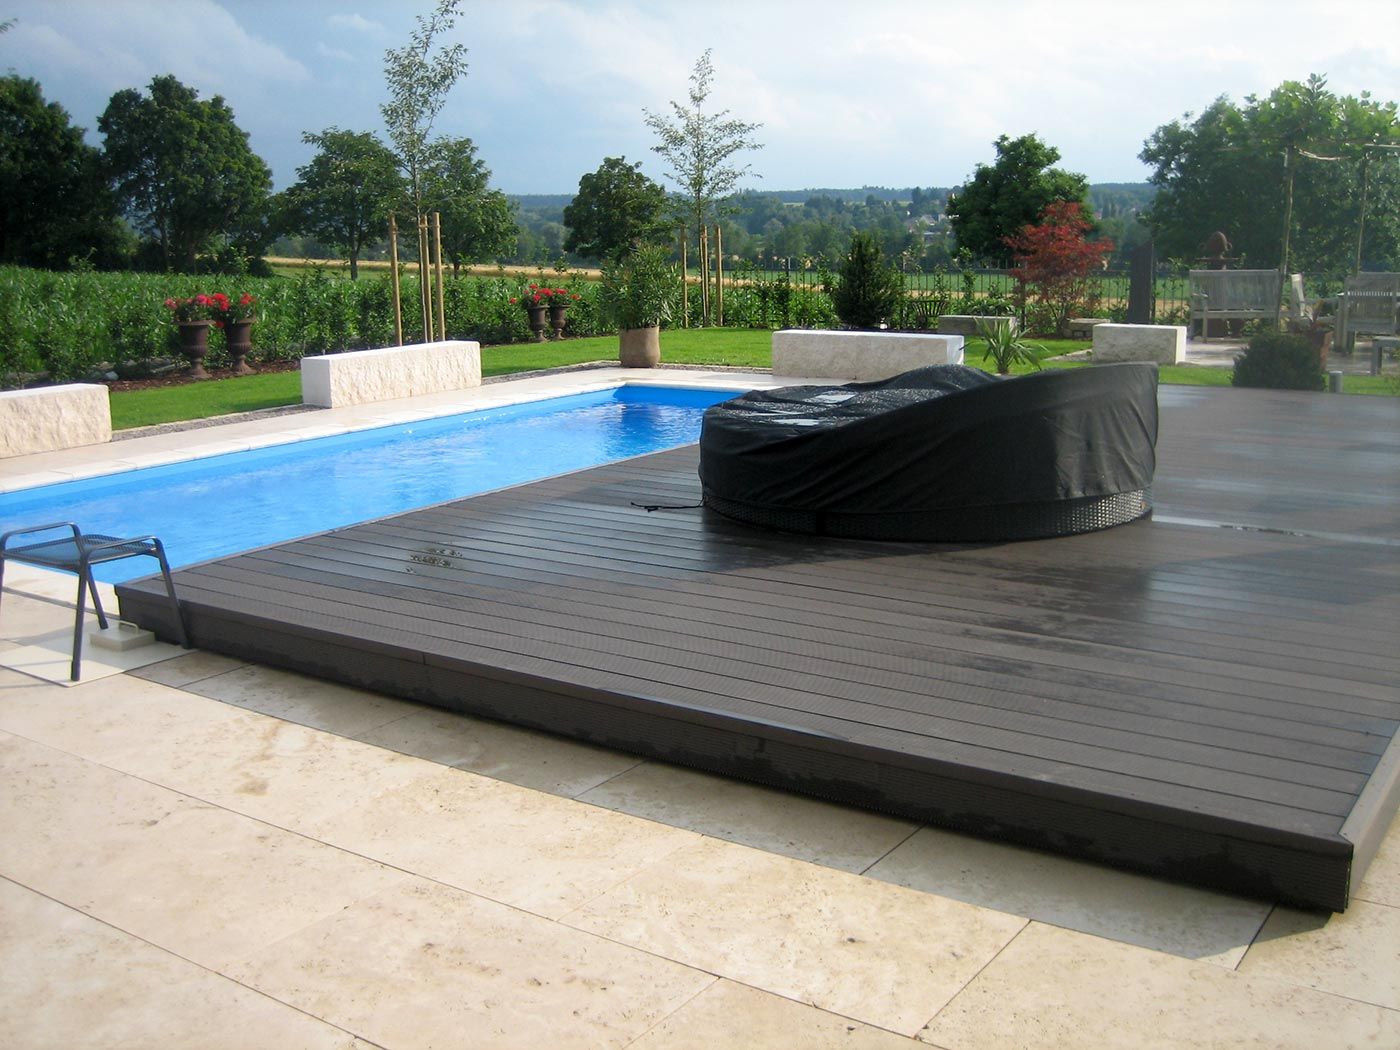 das fahrbare pooldeck von stegmann ihr pool fachmann aus ried. Black Bedroom Furniture Sets. Home Design Ideas